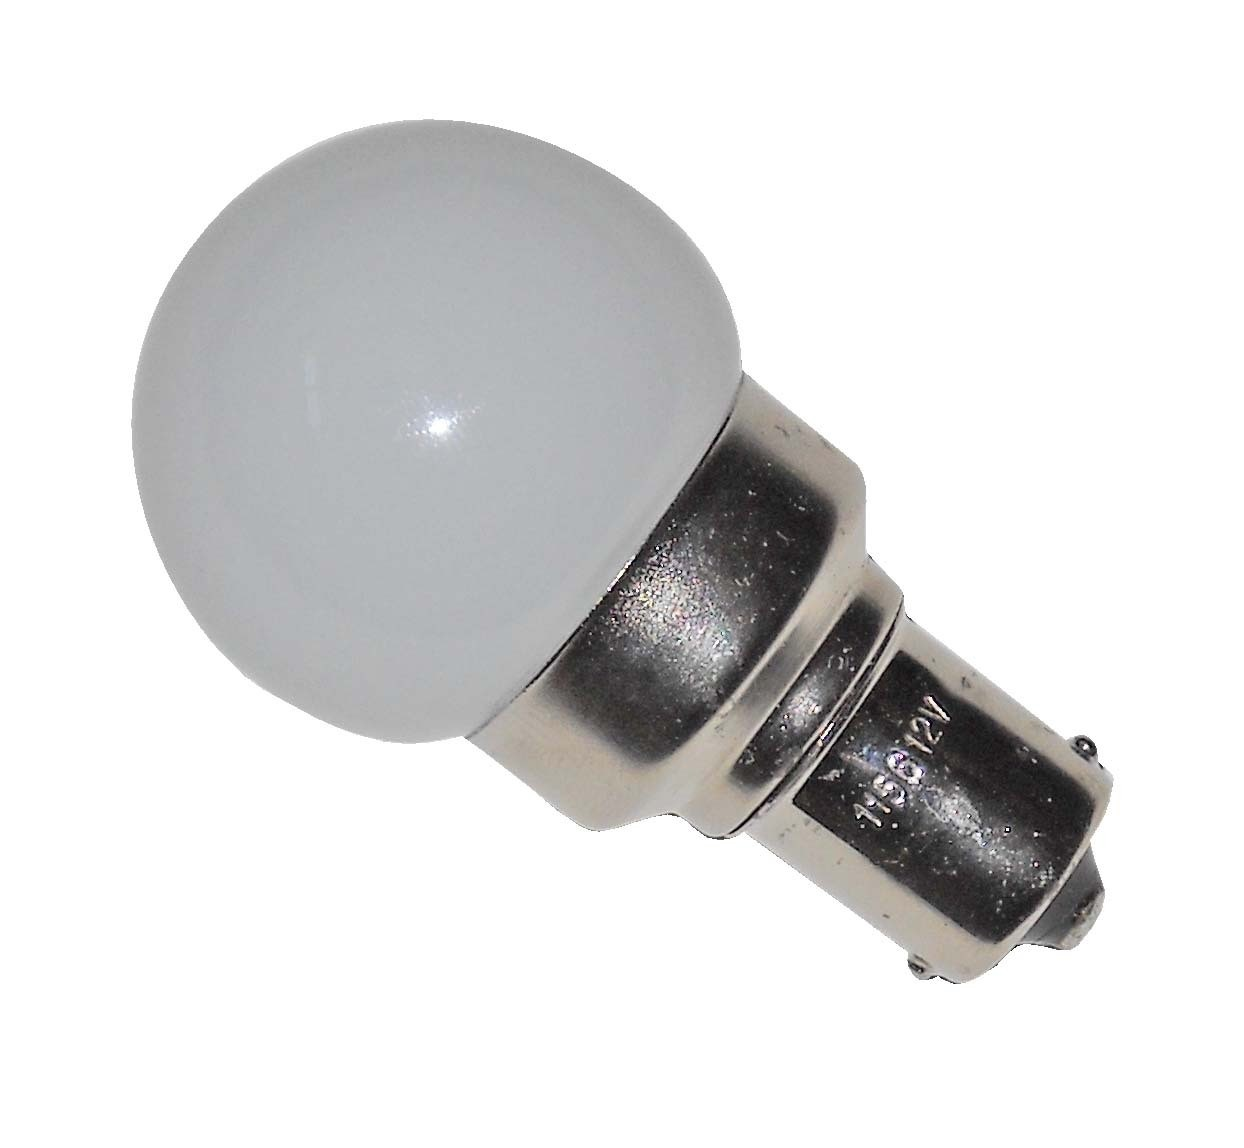 3 Watt LED Bulb Replacement for 20-99